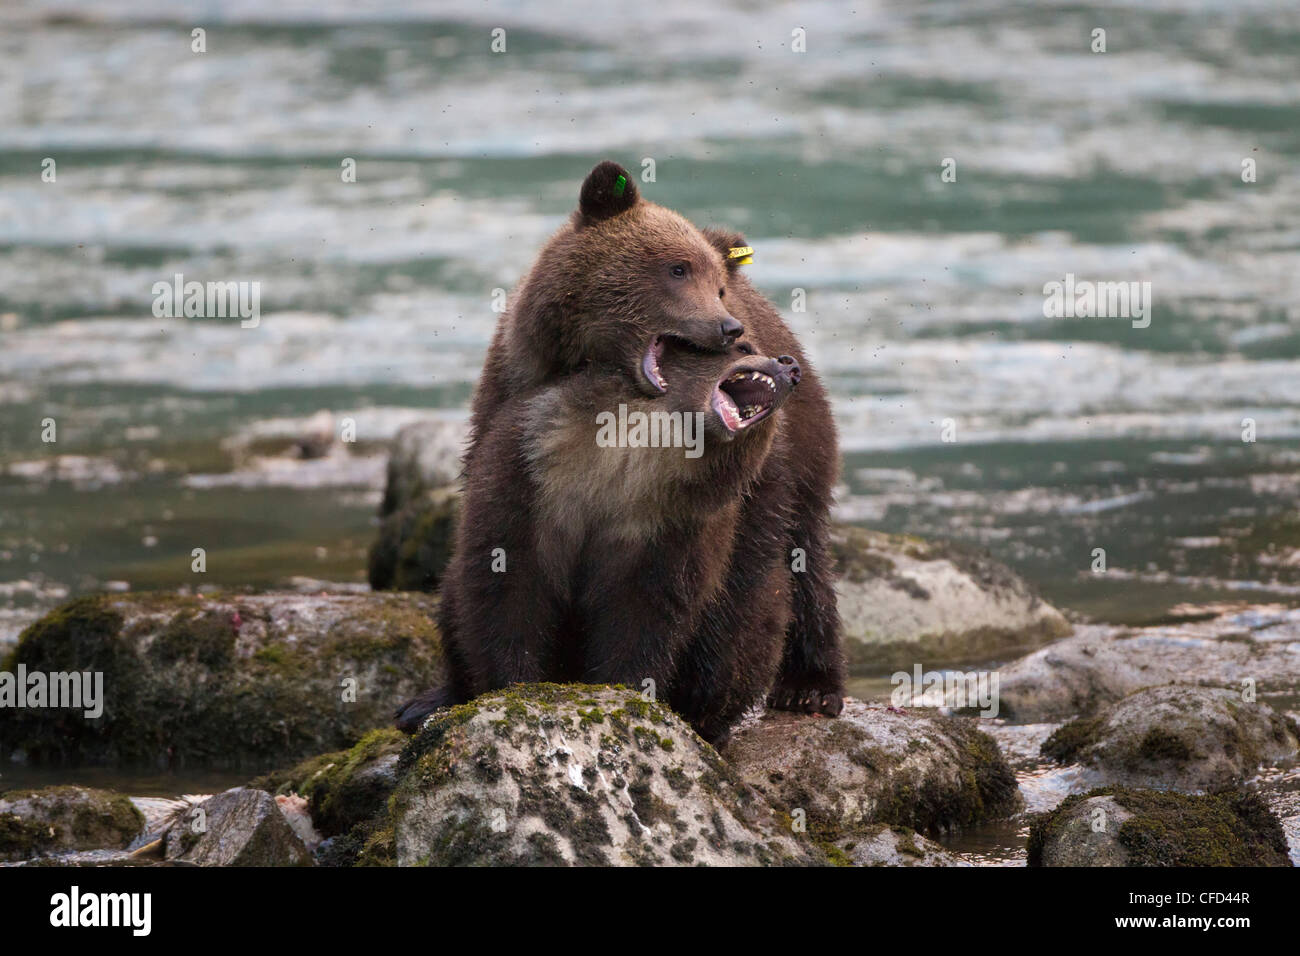 Grizzly bear (Ursus arctos horribilis), cubs, play wrestling, Chilkoot River, Haines, Alaska, United States of America - Stock Image